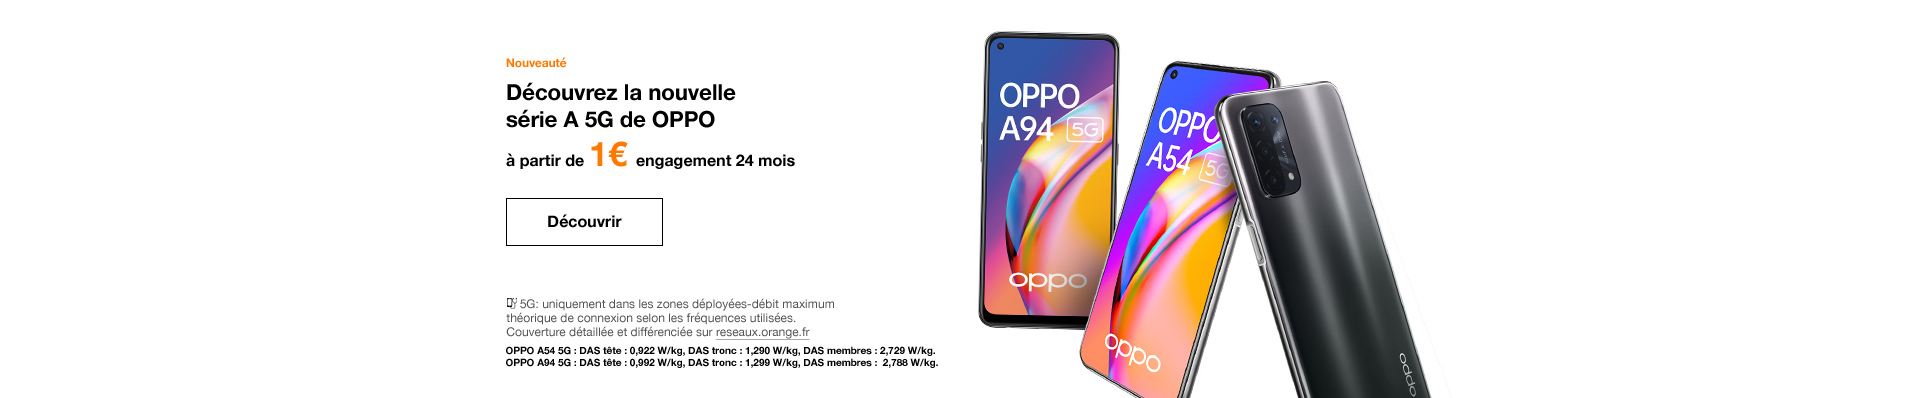 Gamme OPPO 5G A